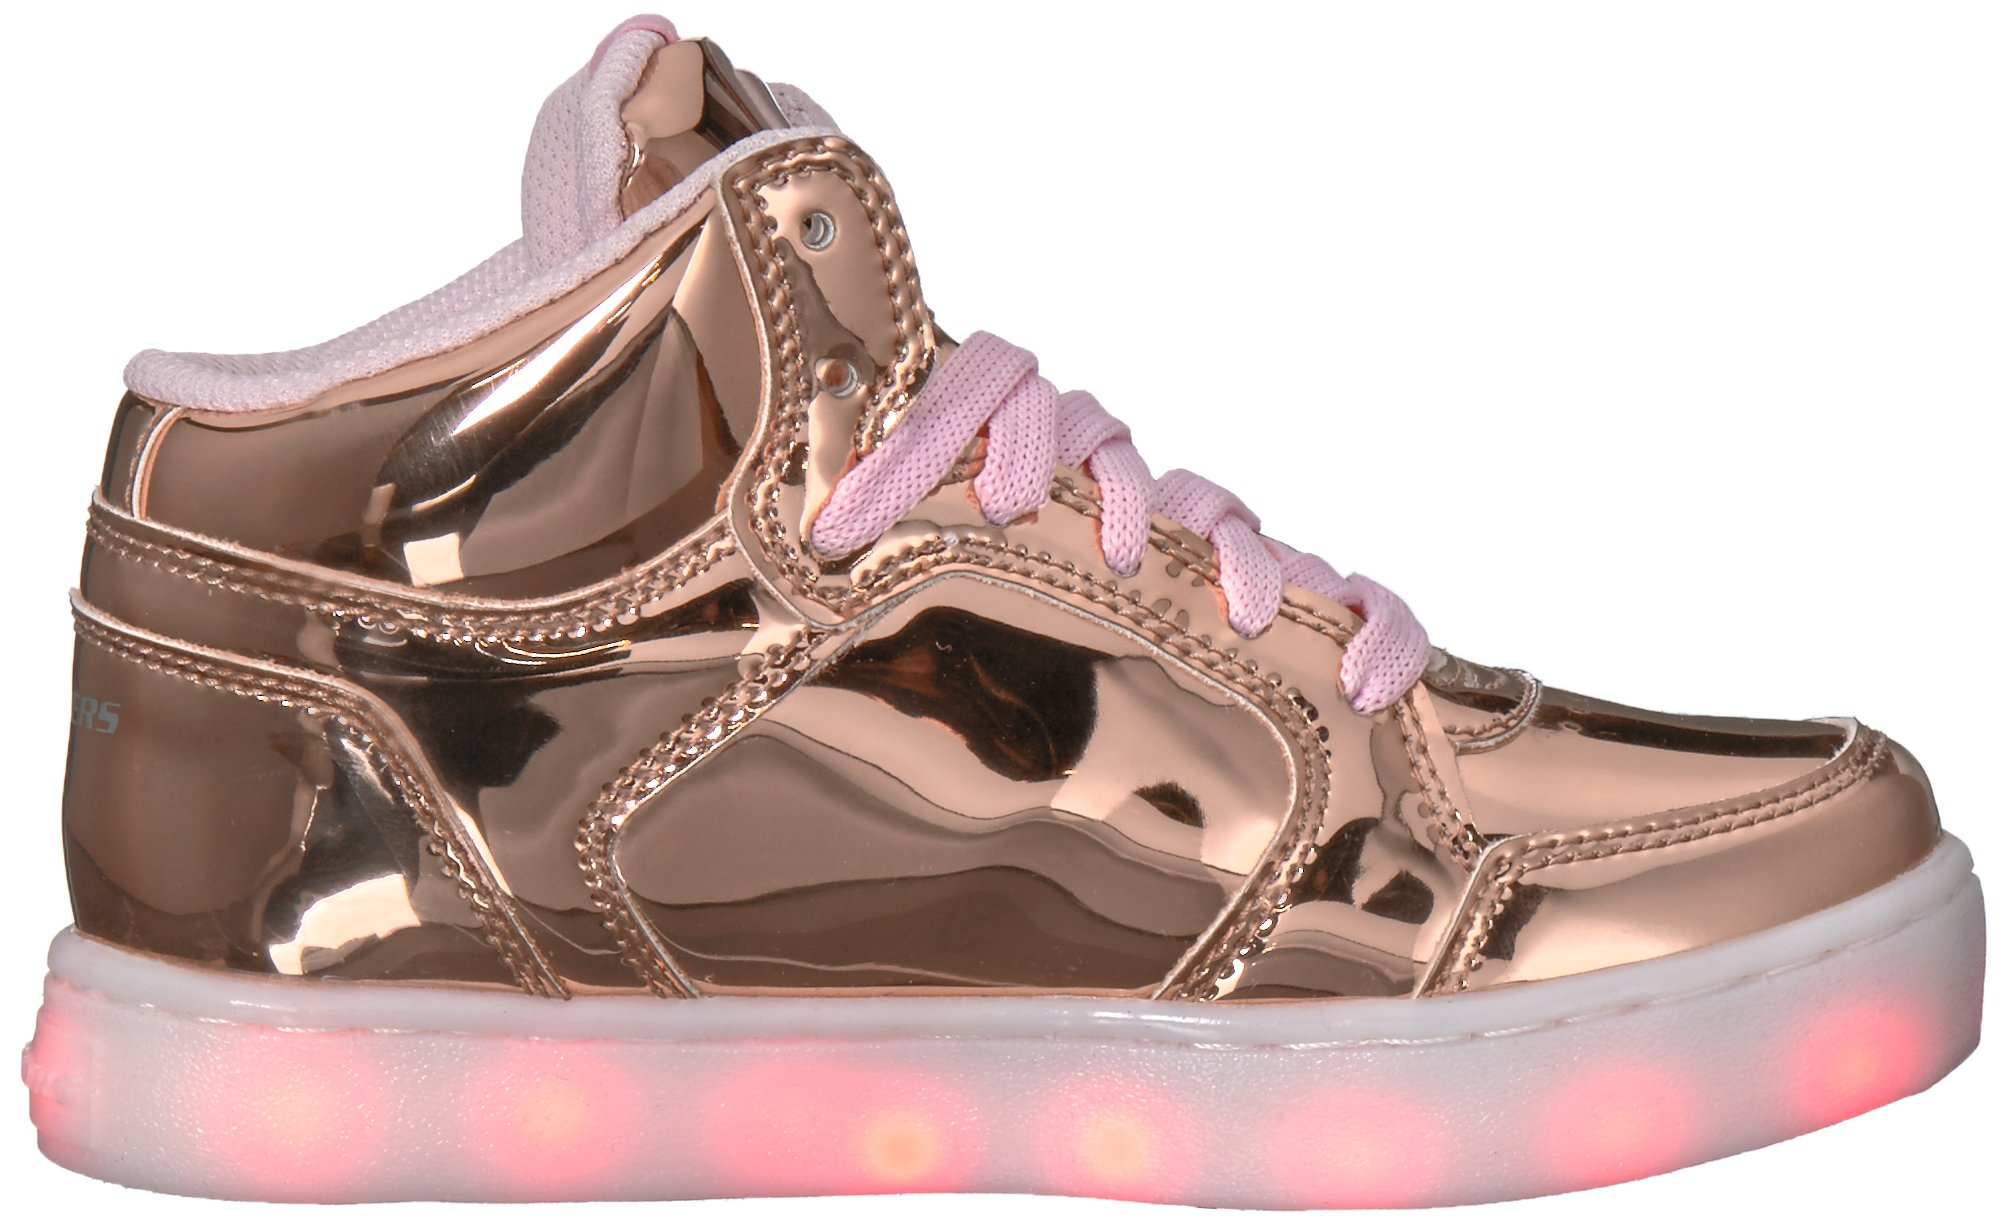 Skechers Kids Energy Lights-Dance-N-Dazzle Sneaker,Rose Gold,1 M US Little Kid by Skechers (Image #7)